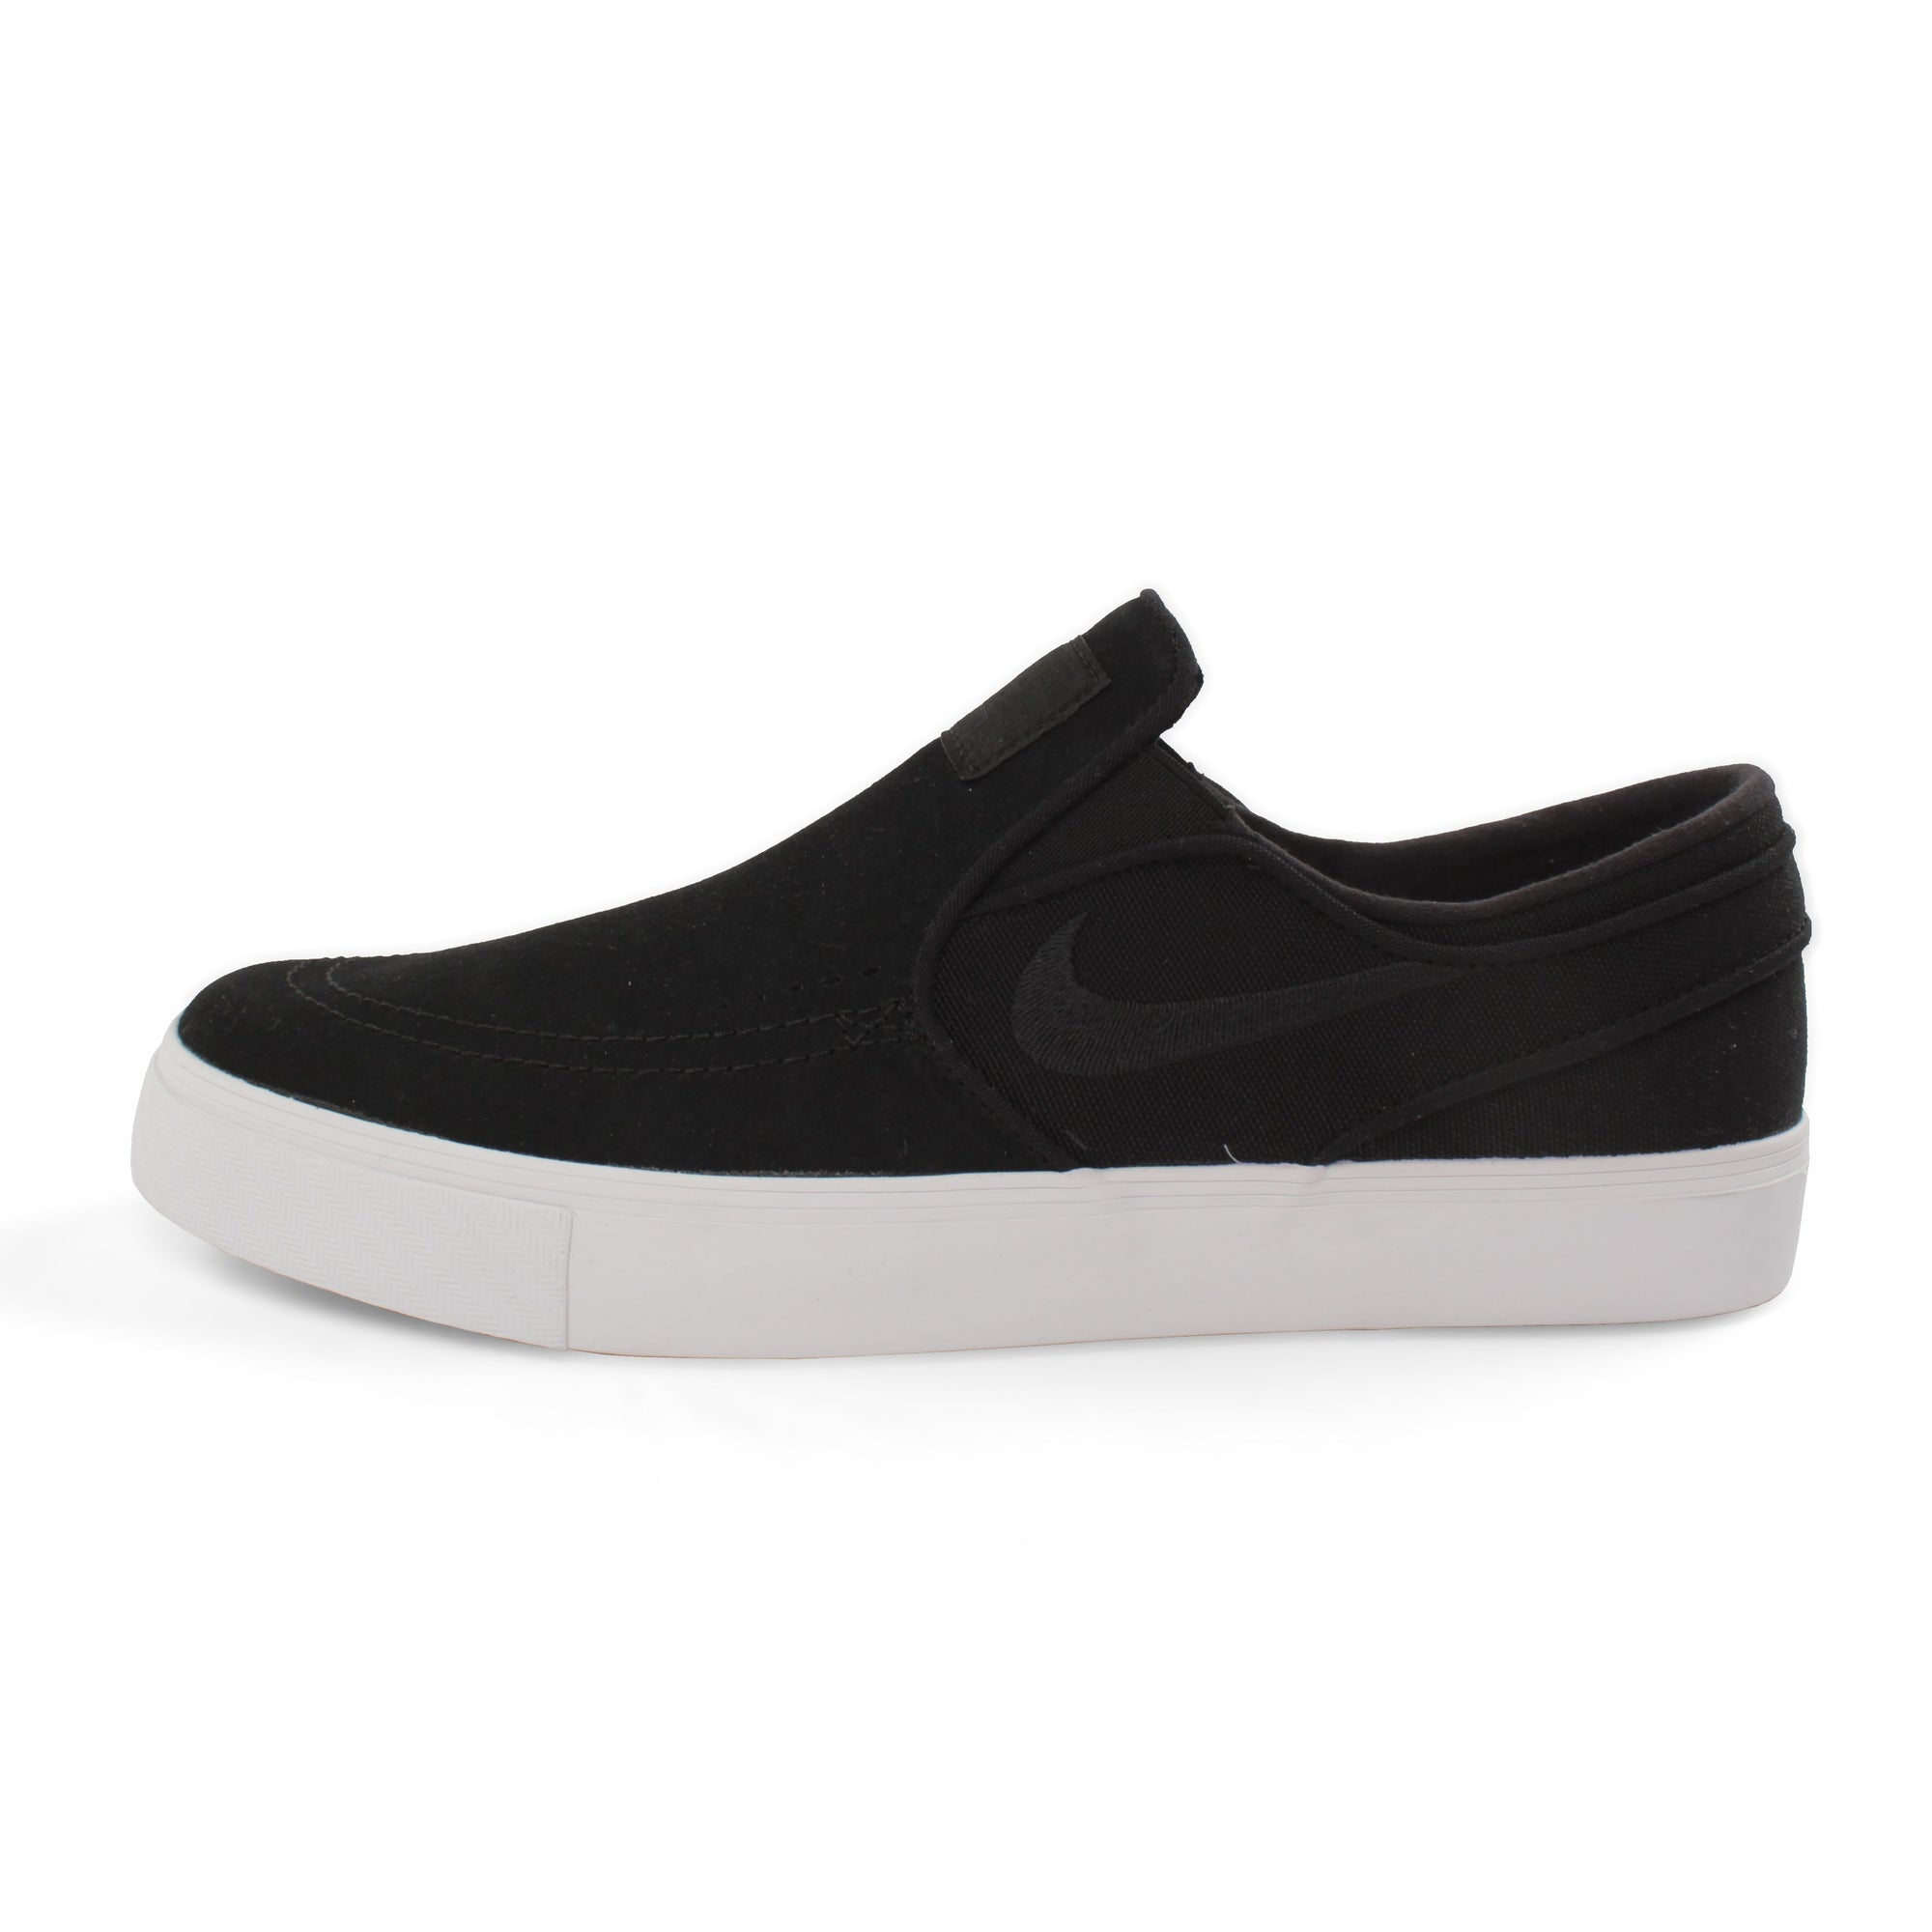 Nike SB Janoski Slip On Product Photo #1